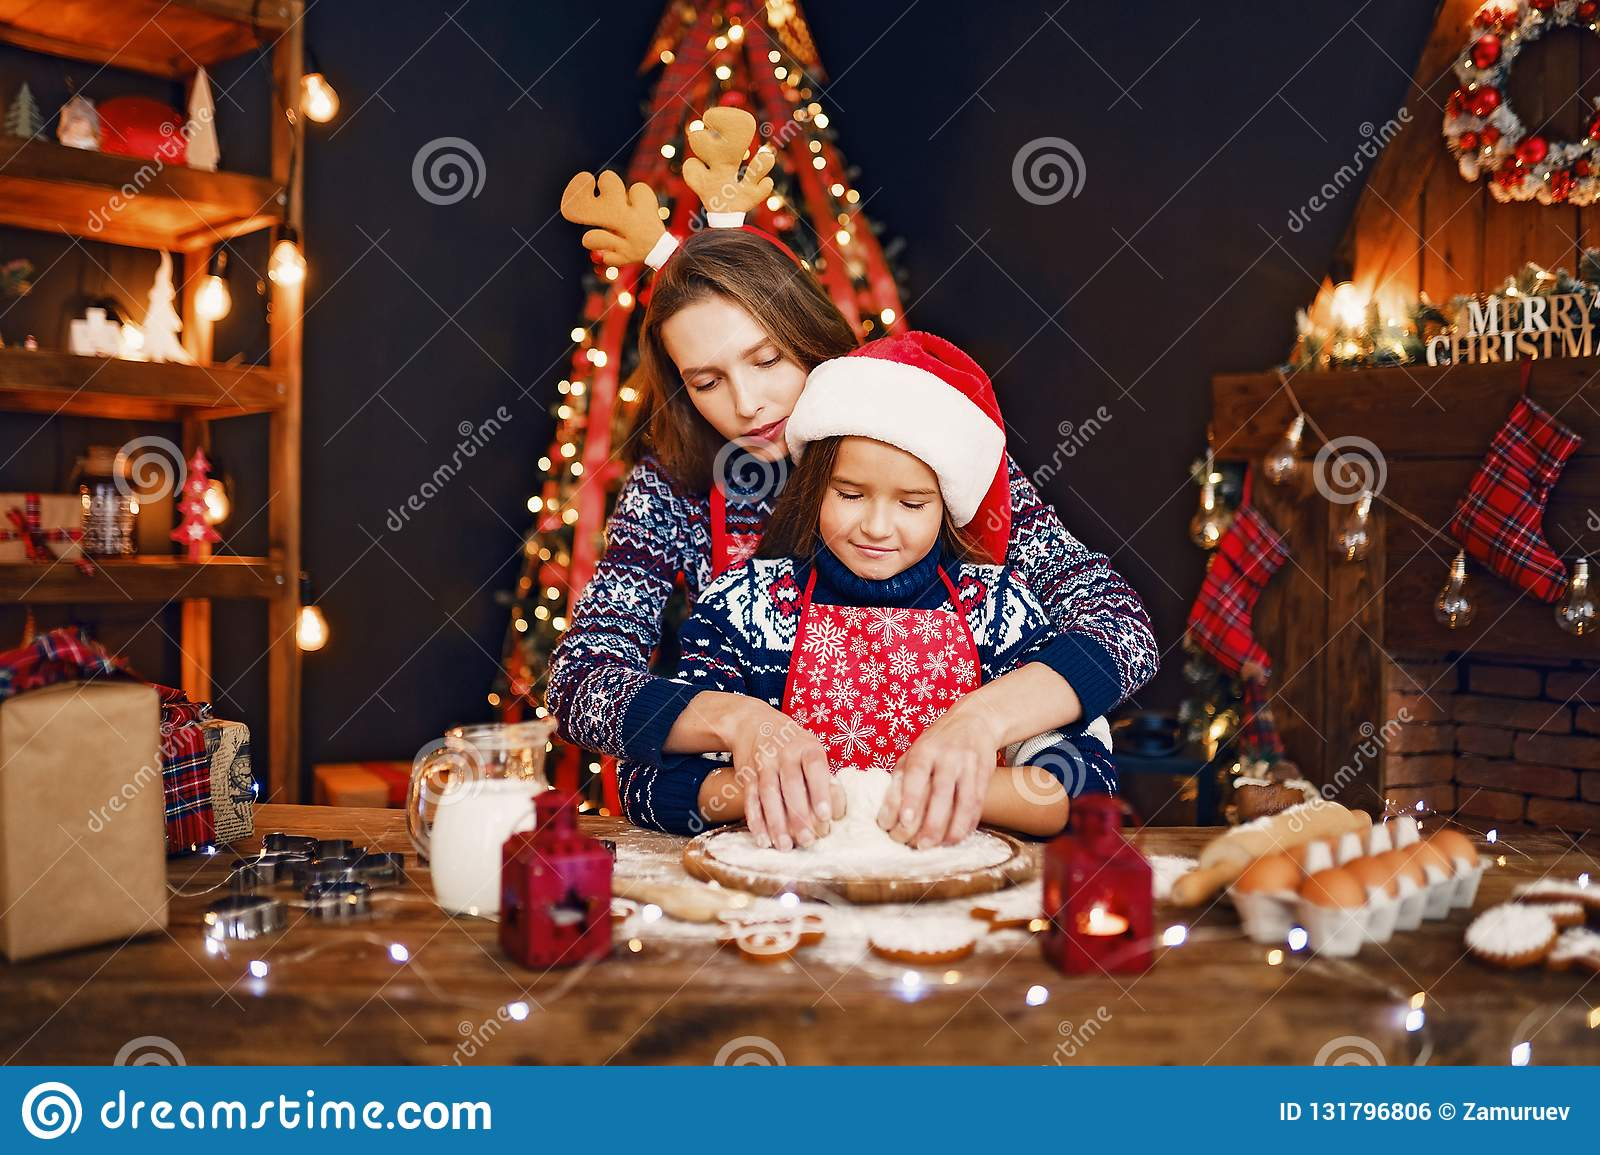 Merry Christmas and Happy Holidays. Mother and daughter cooking Christmas cookies.